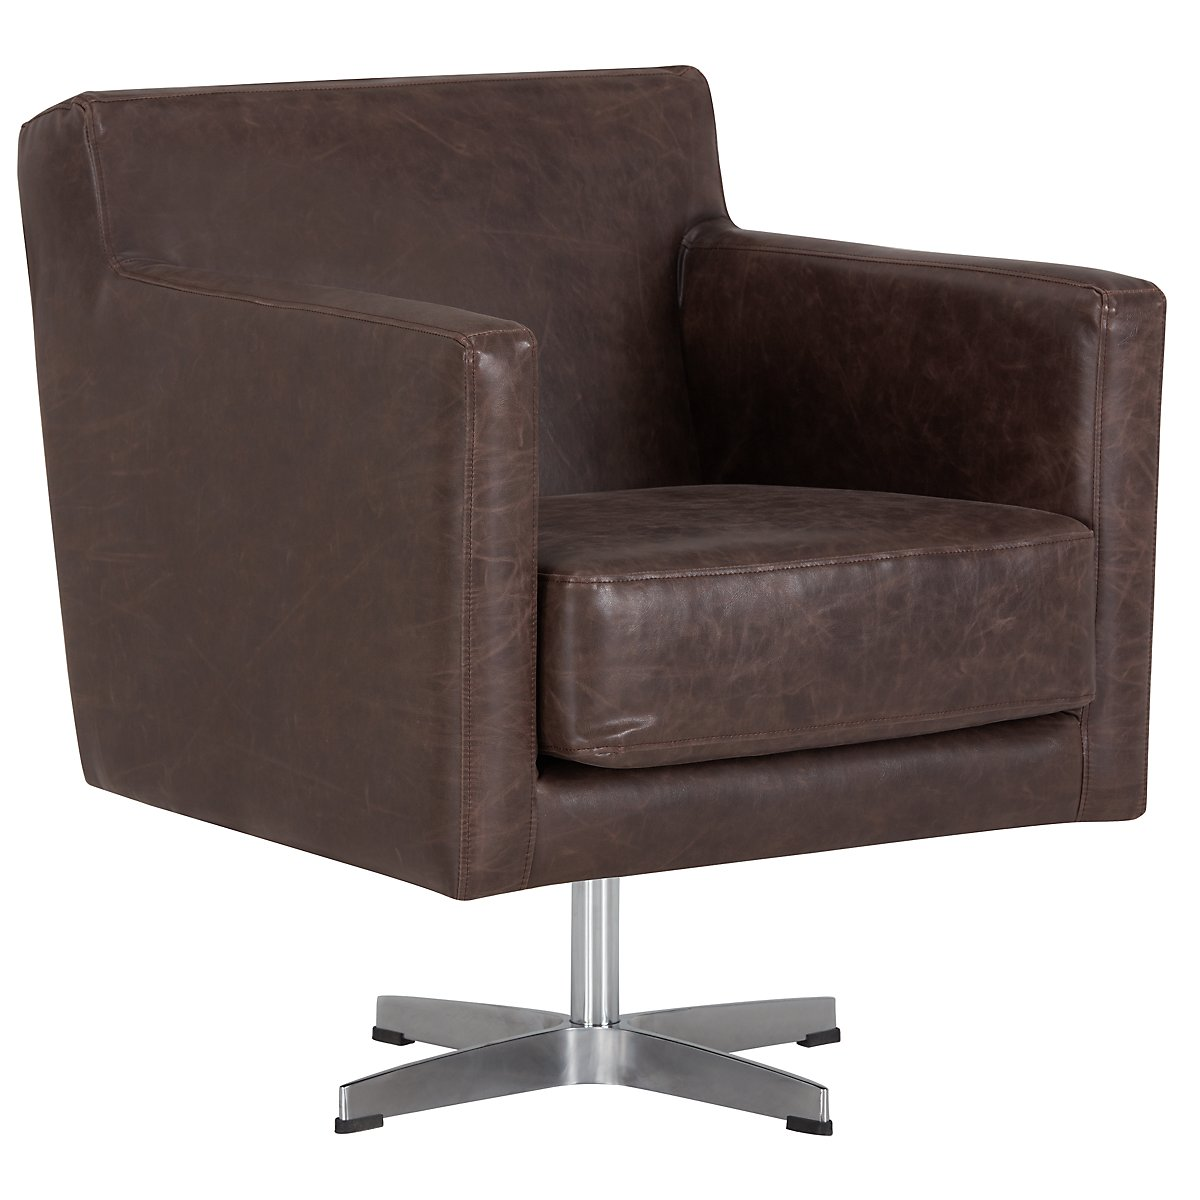 Nora Brown Swivel Chair